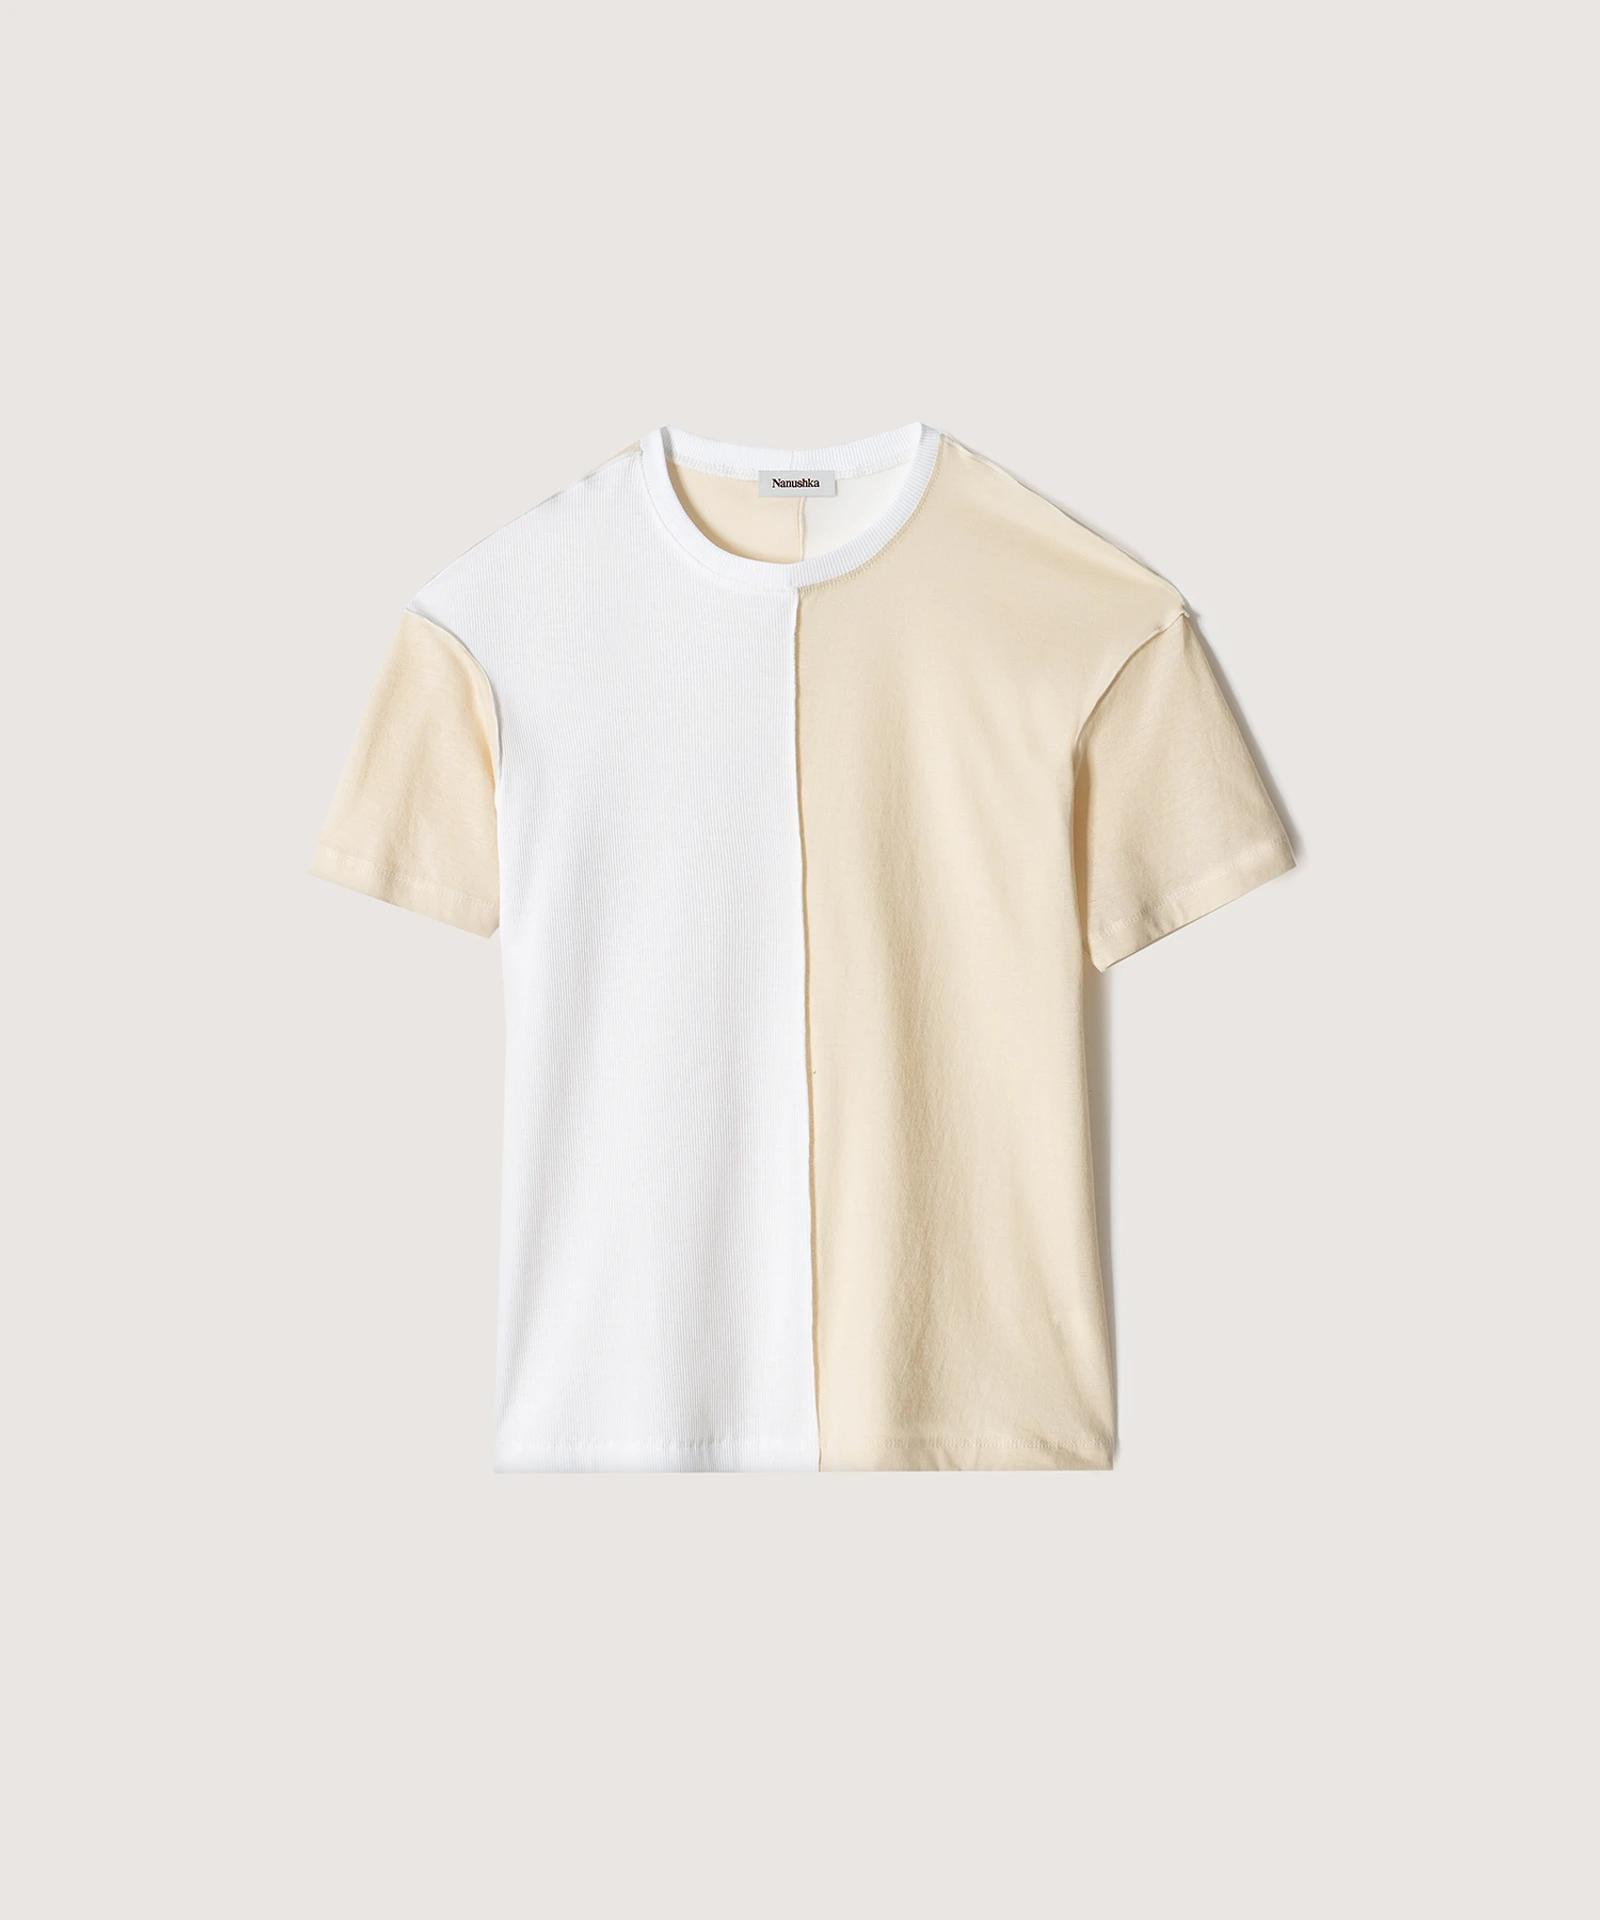 HOVE - Upcycled jersey T-shirt - Creme 3